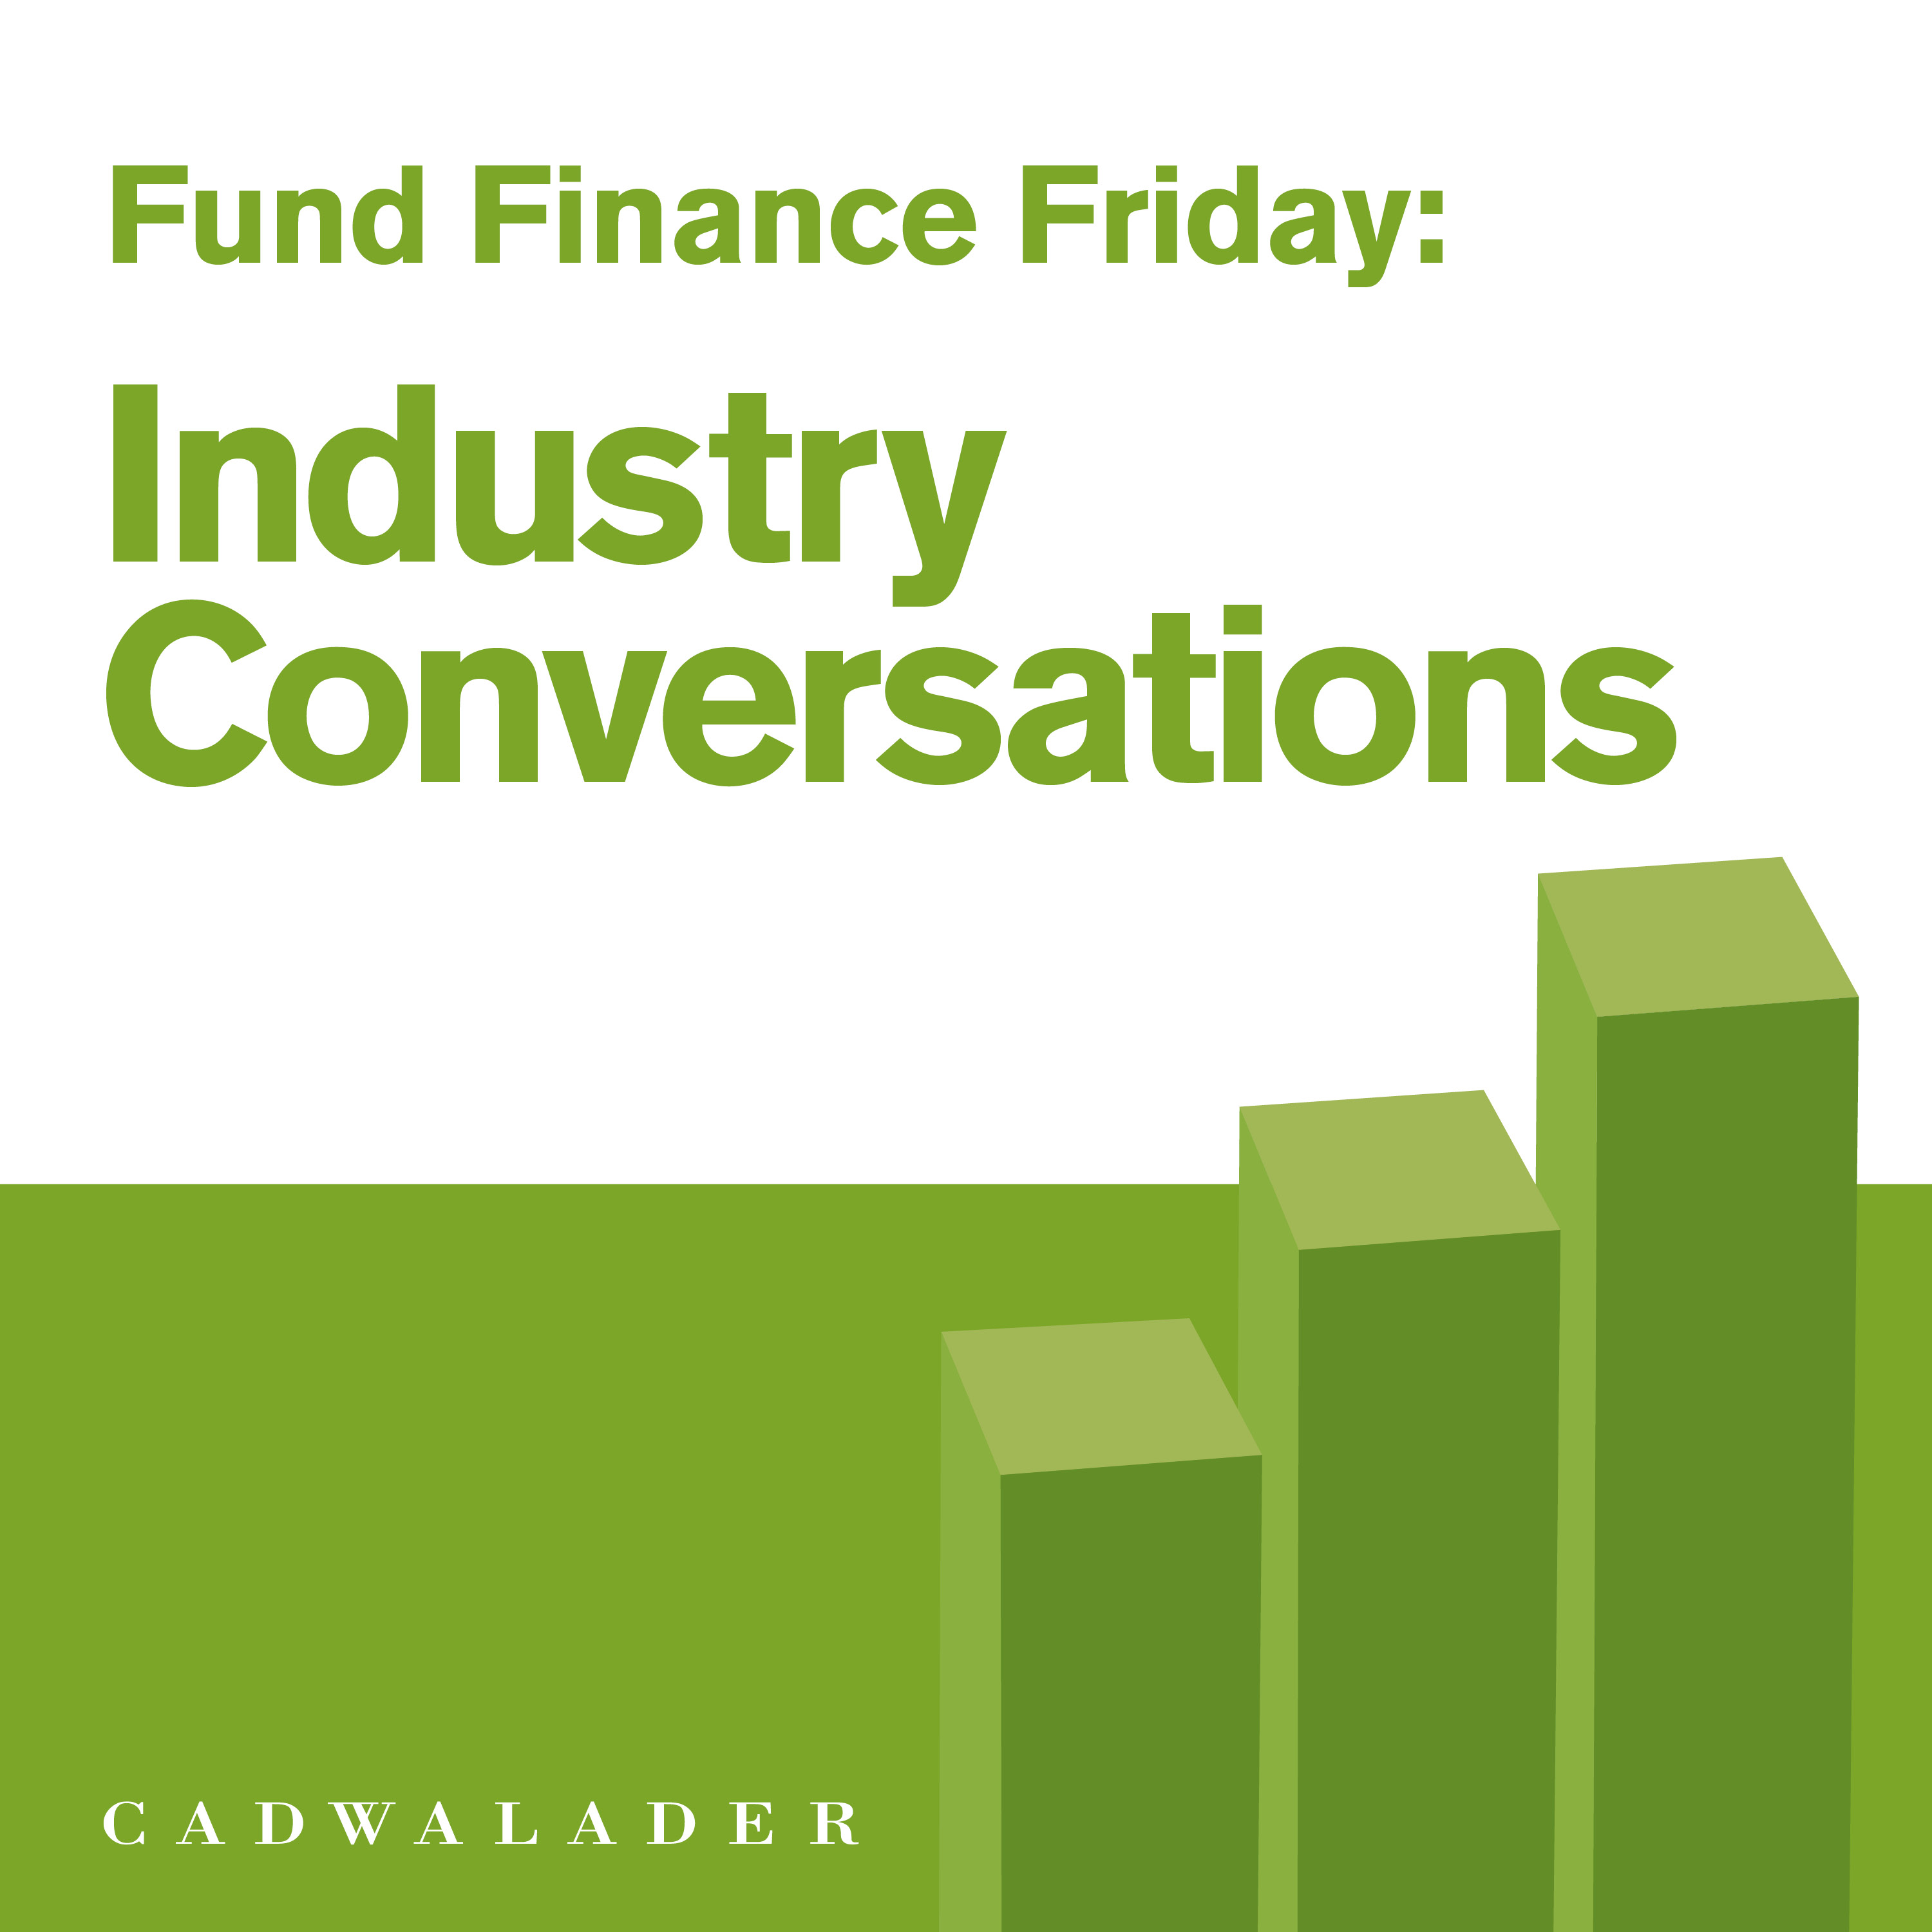 Fund Finance Friday Industry Conversations LIBOR Transition Update with Jeffrey Nagle 320 kbps show art